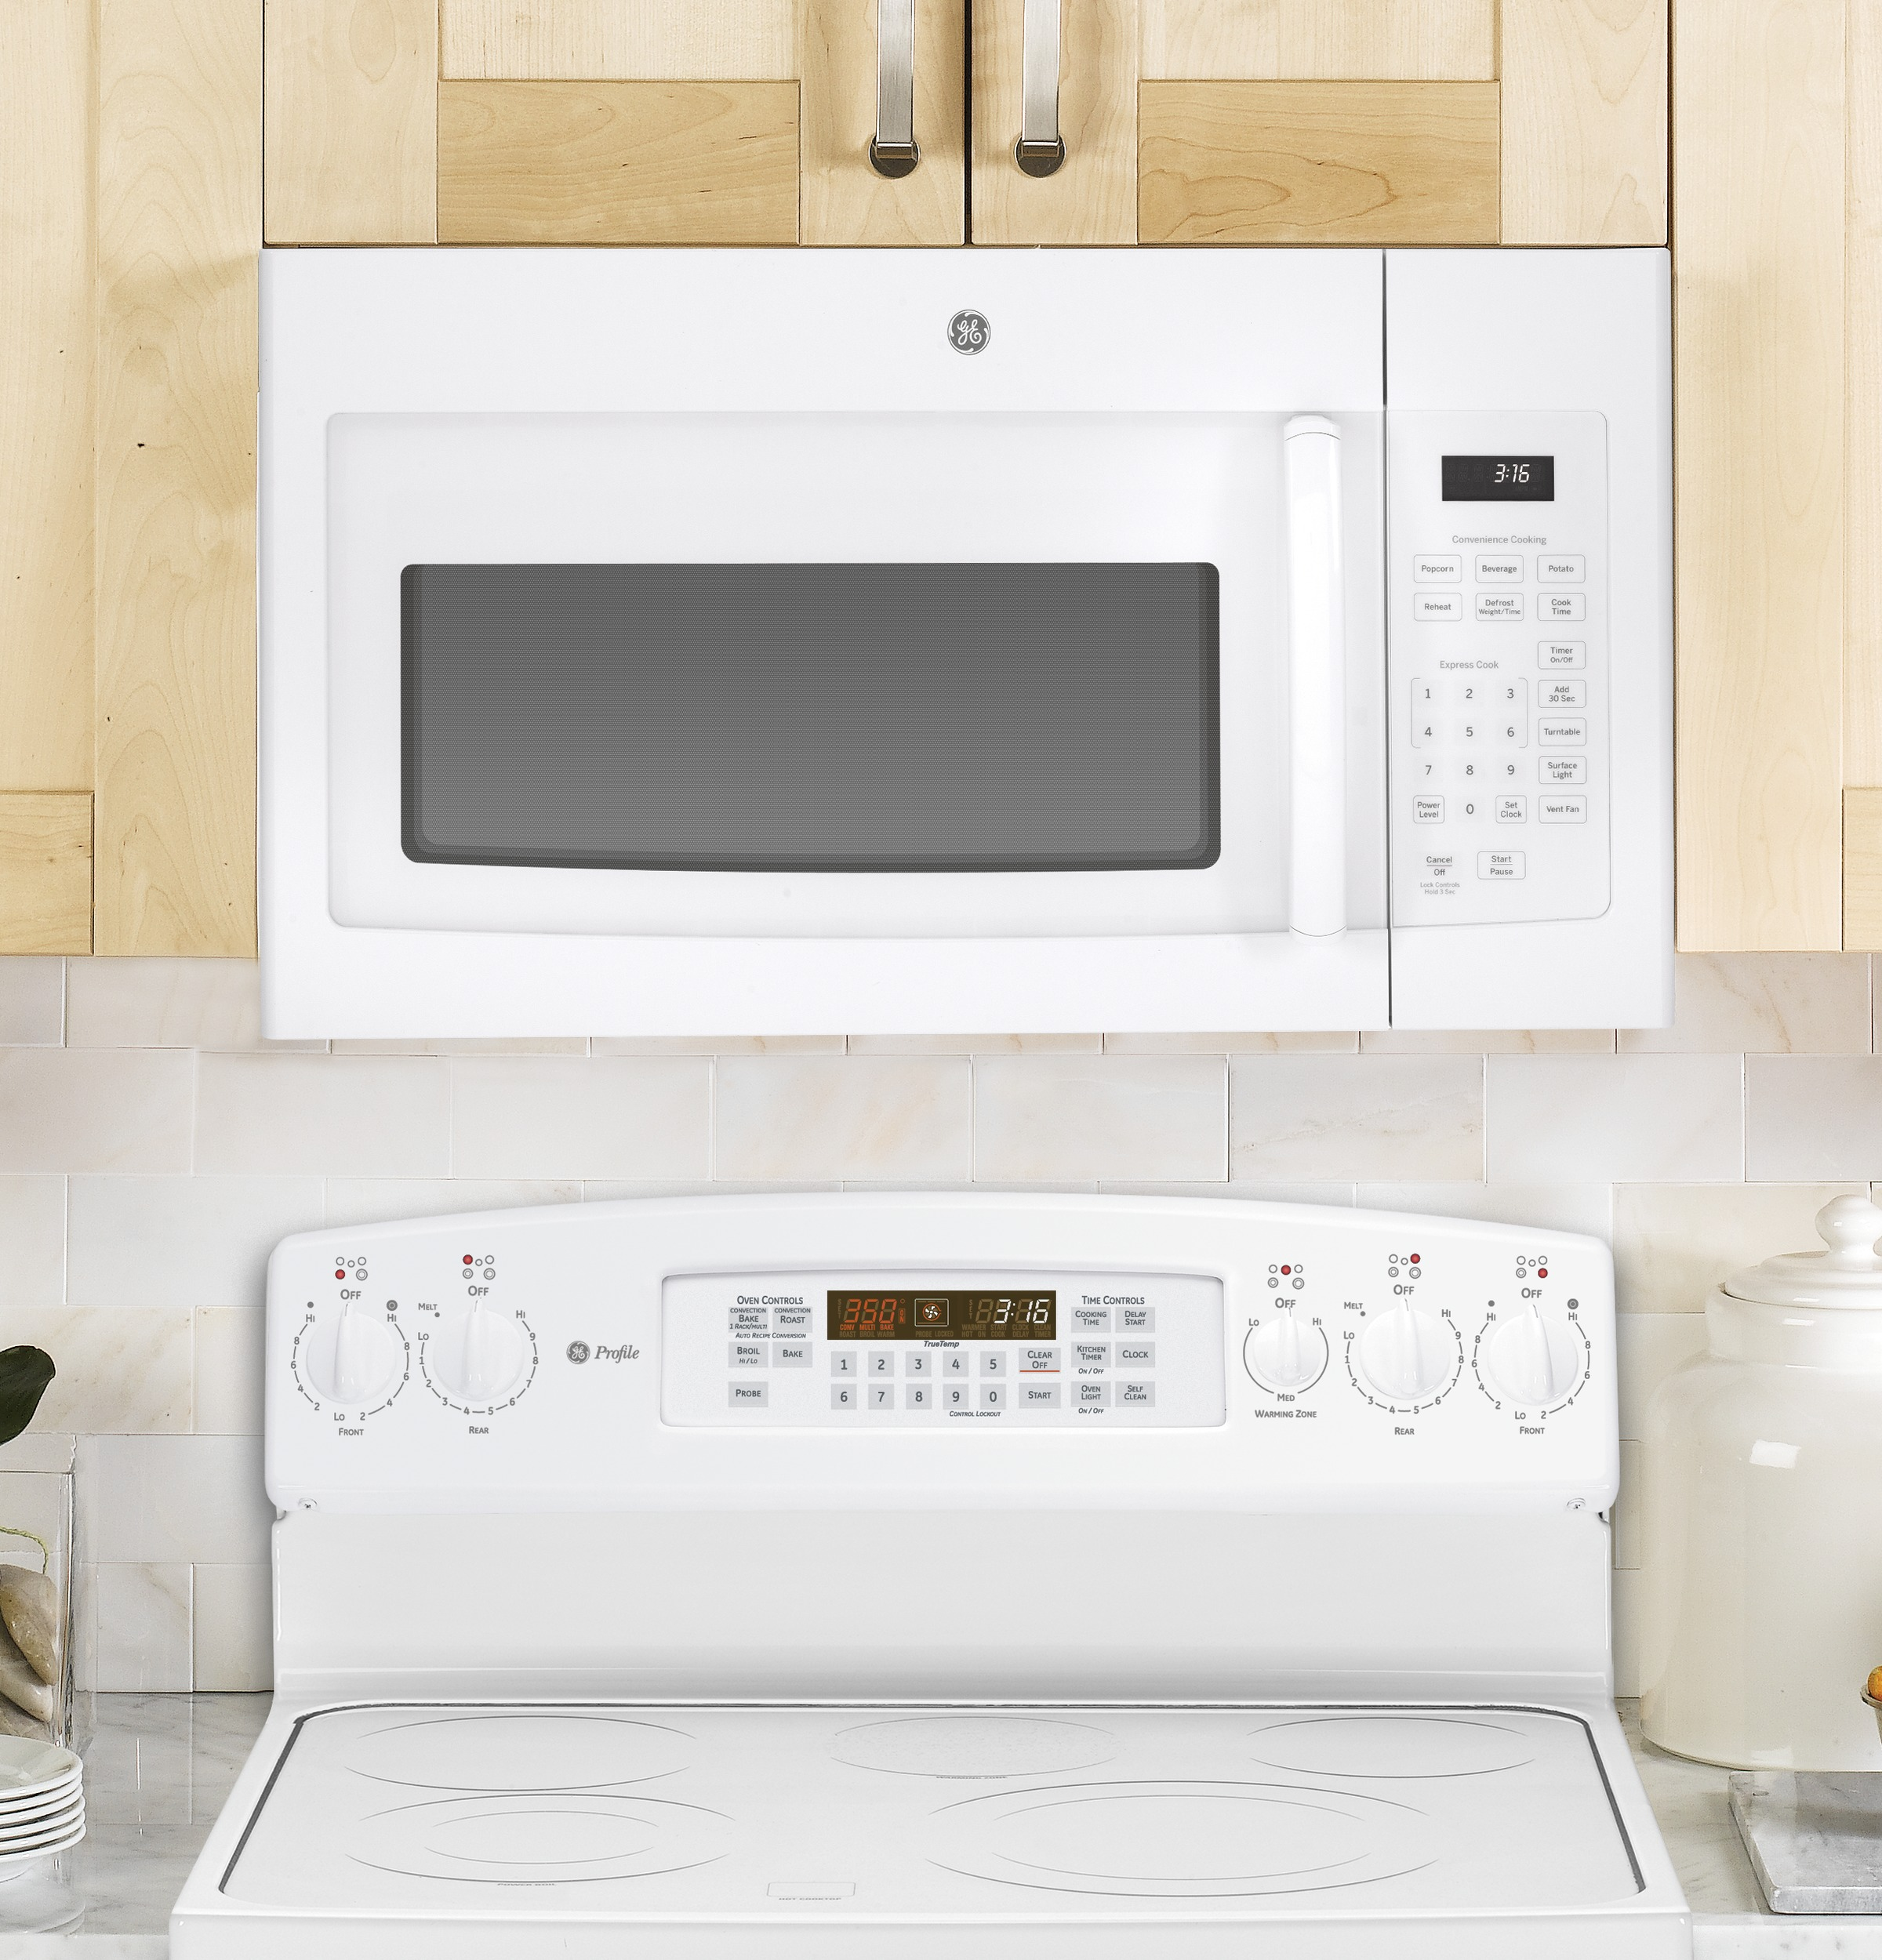 Ge 16 Cu Ft Over The Range Microwave Oven Jvm3160dfww Micro Turbo Timer Wiring 1 Of 10